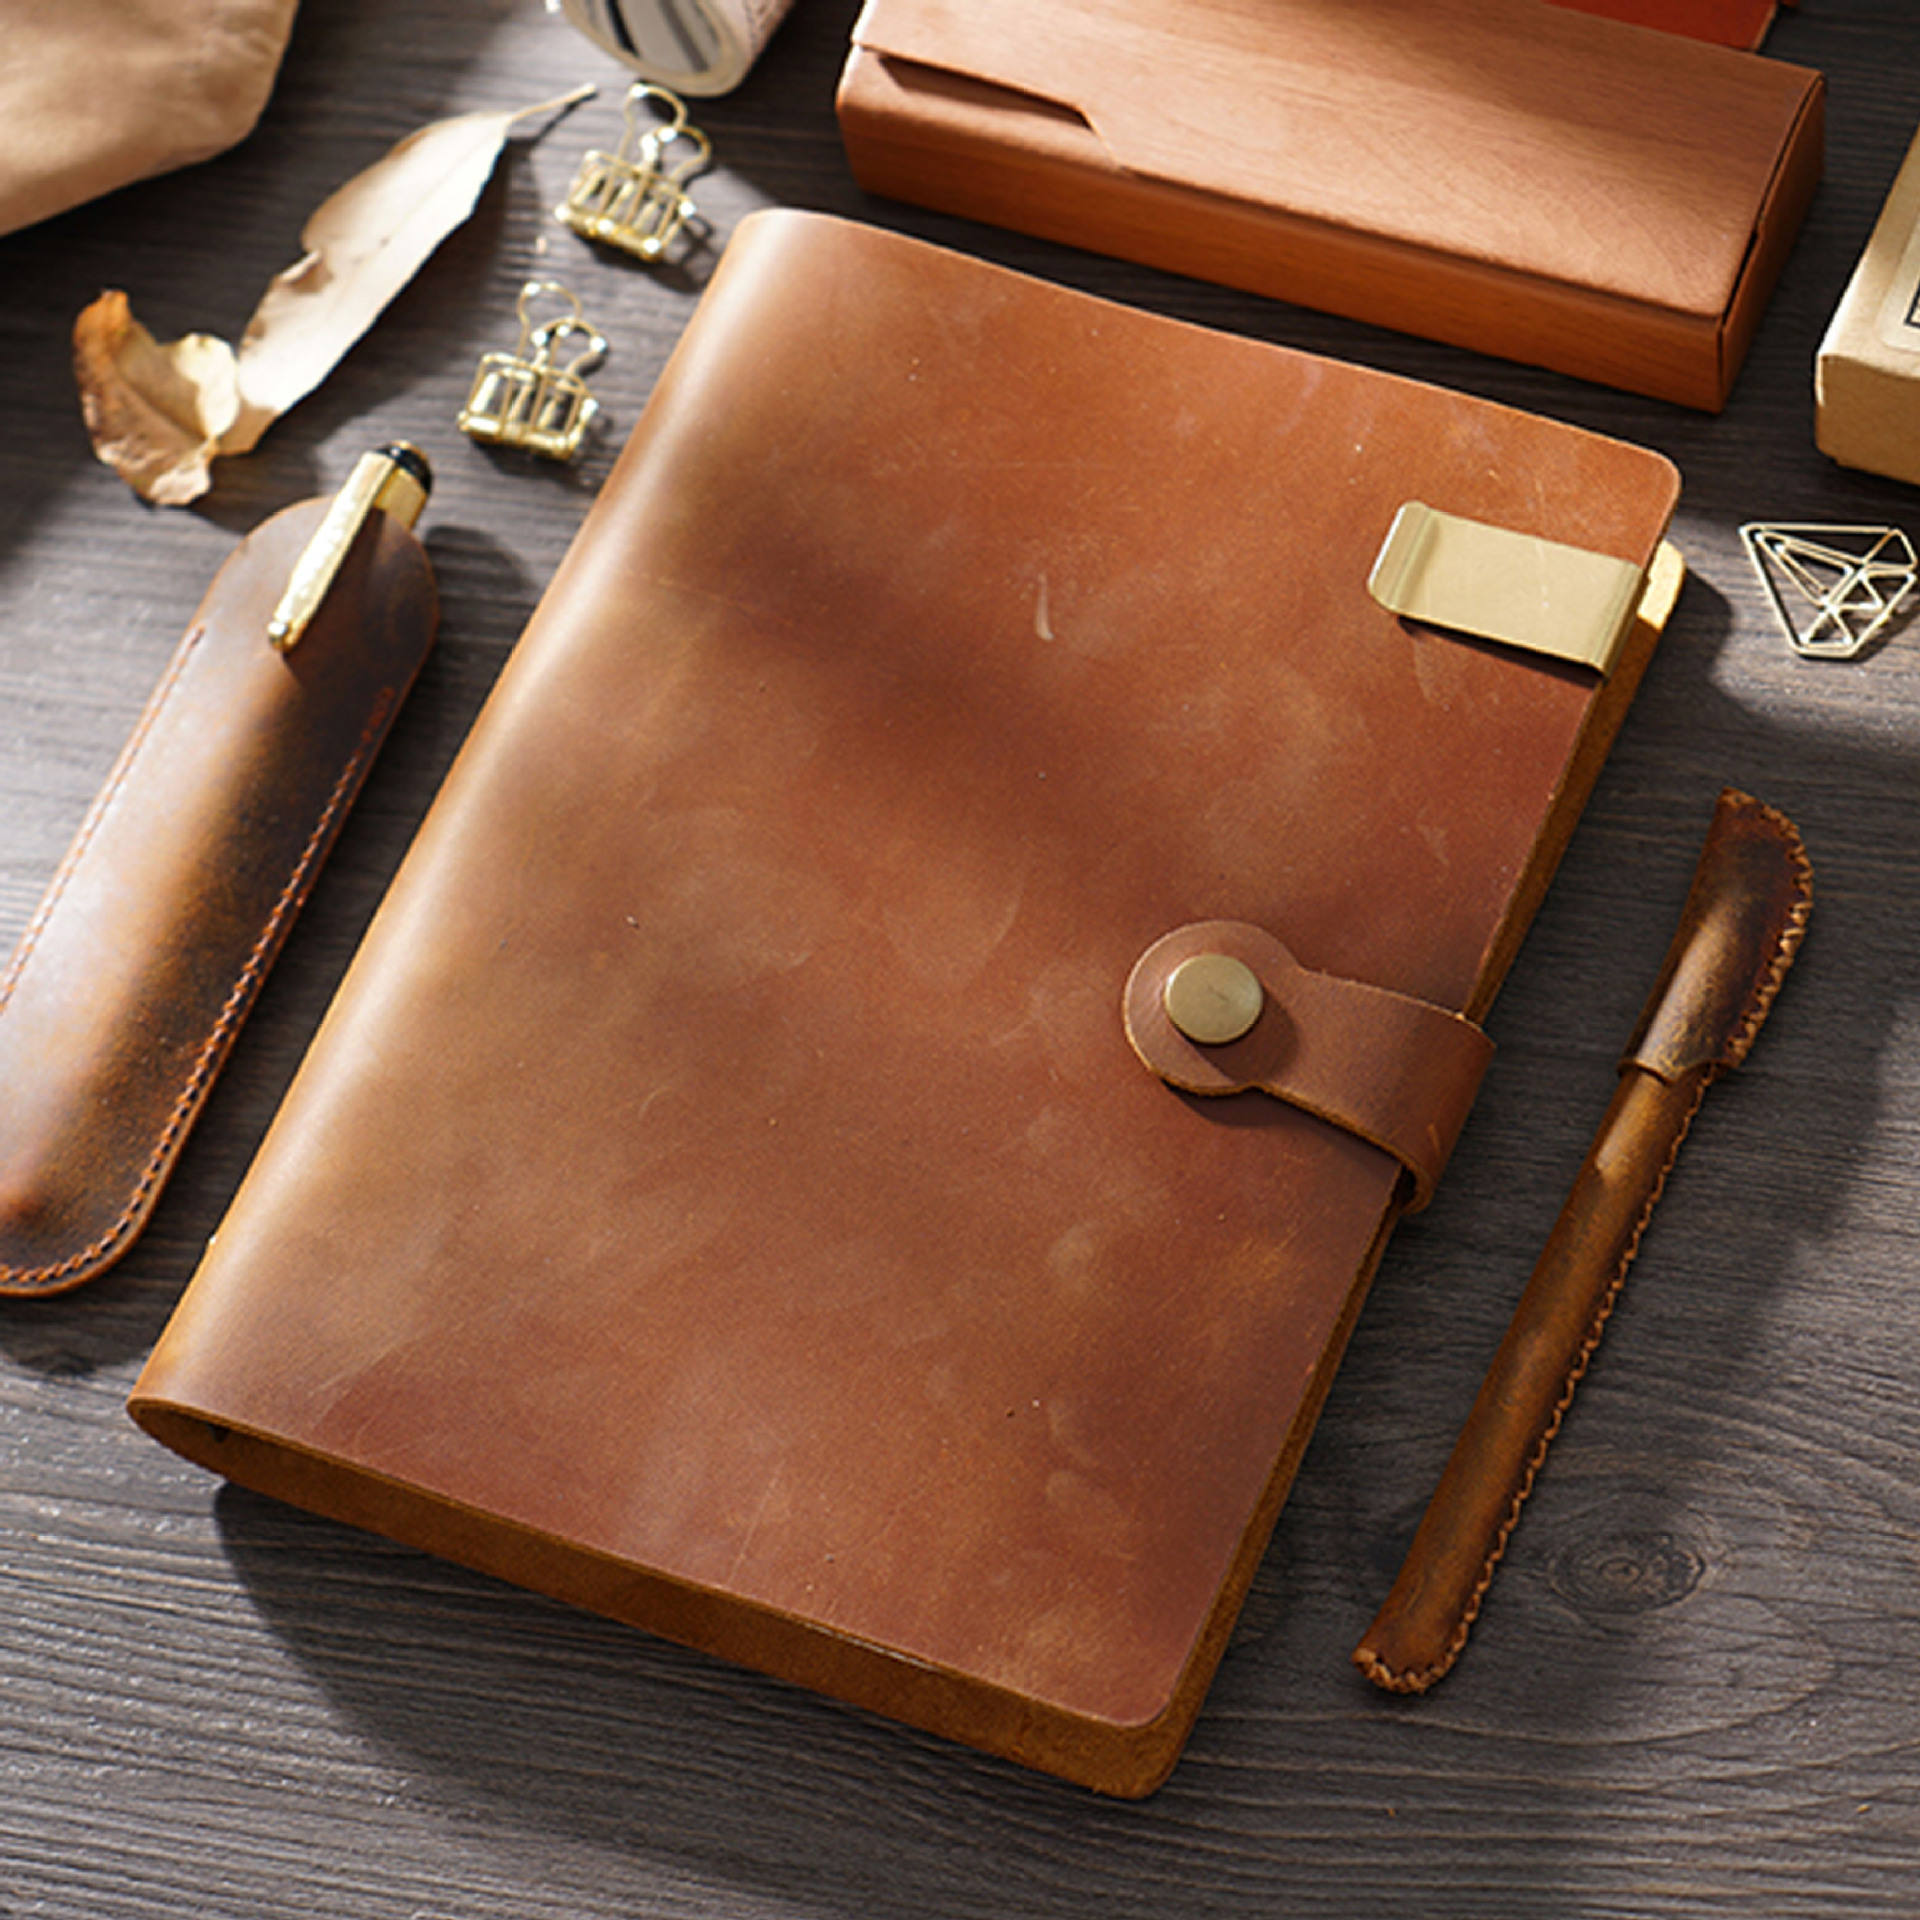 Vintage Style Real Leather Notebook Hervulbare Echt 6 Ring Lederen Journal <span class=keywords><strong>Bindmiddel</strong></span>